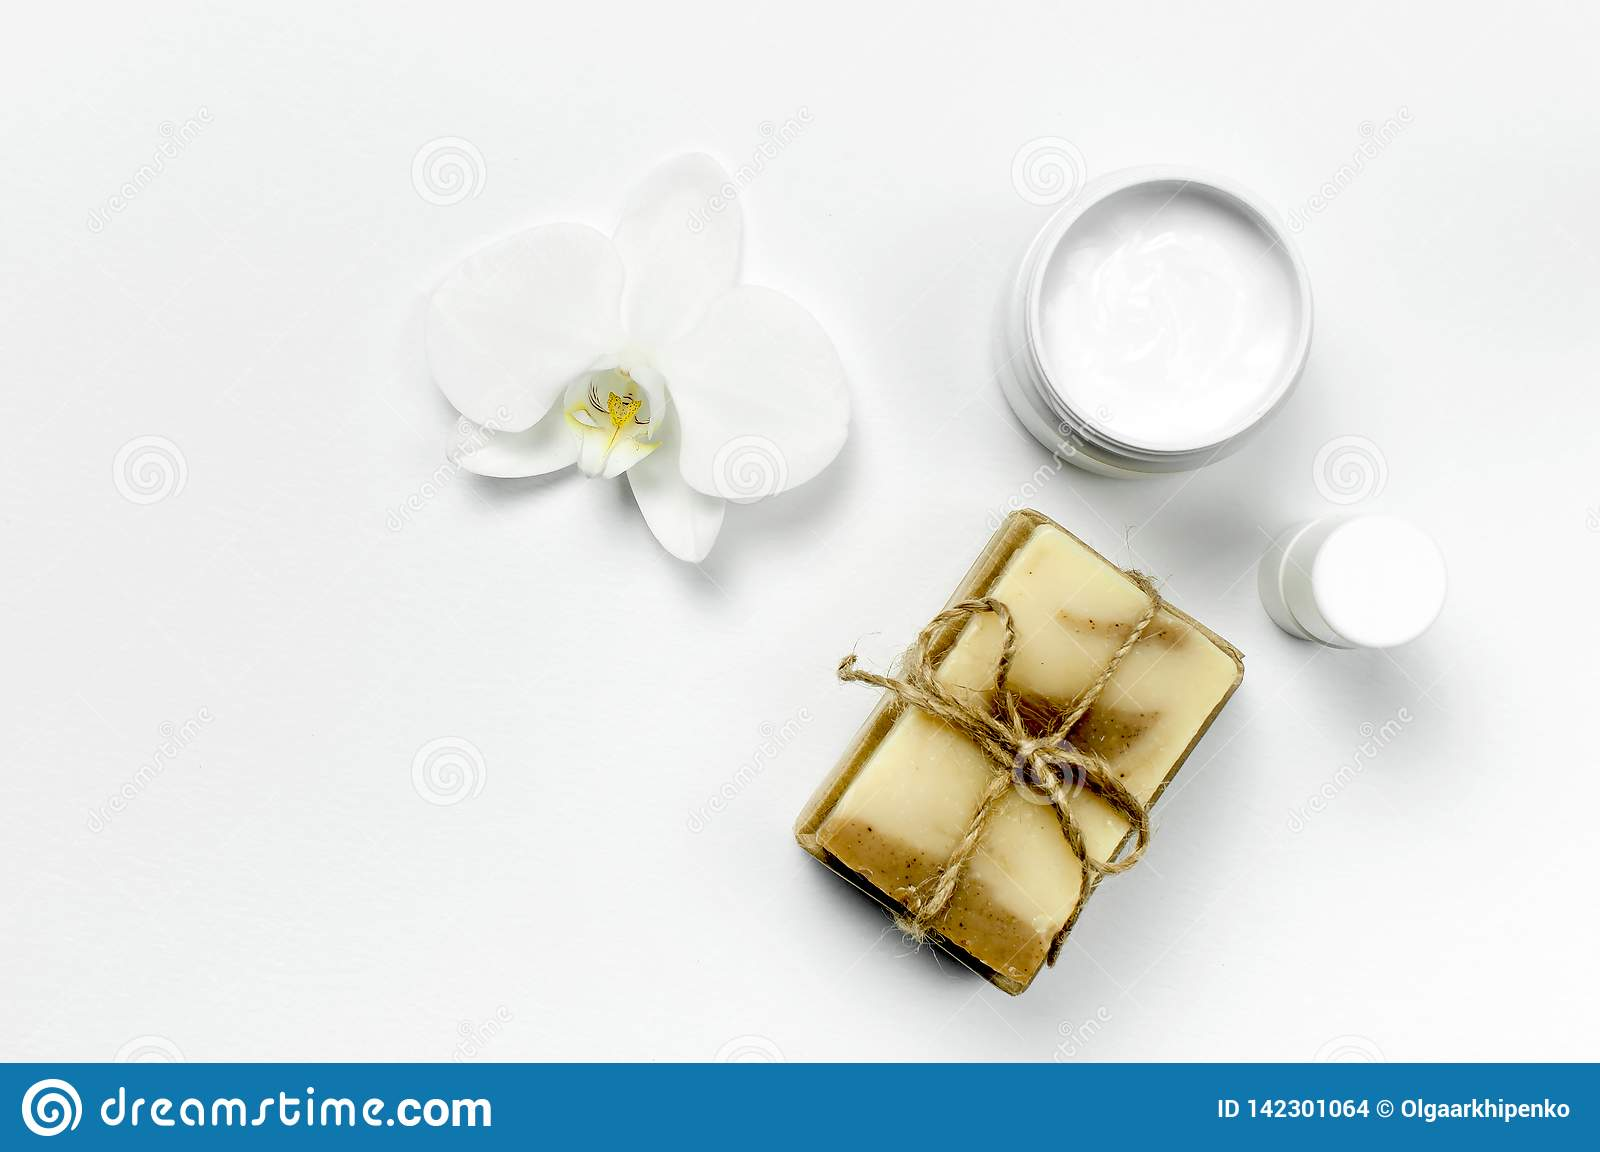 White cosmetic bottle containers, natural soap, orchid flower on white background top view flat lay. Cosmetics SPA branding mock-